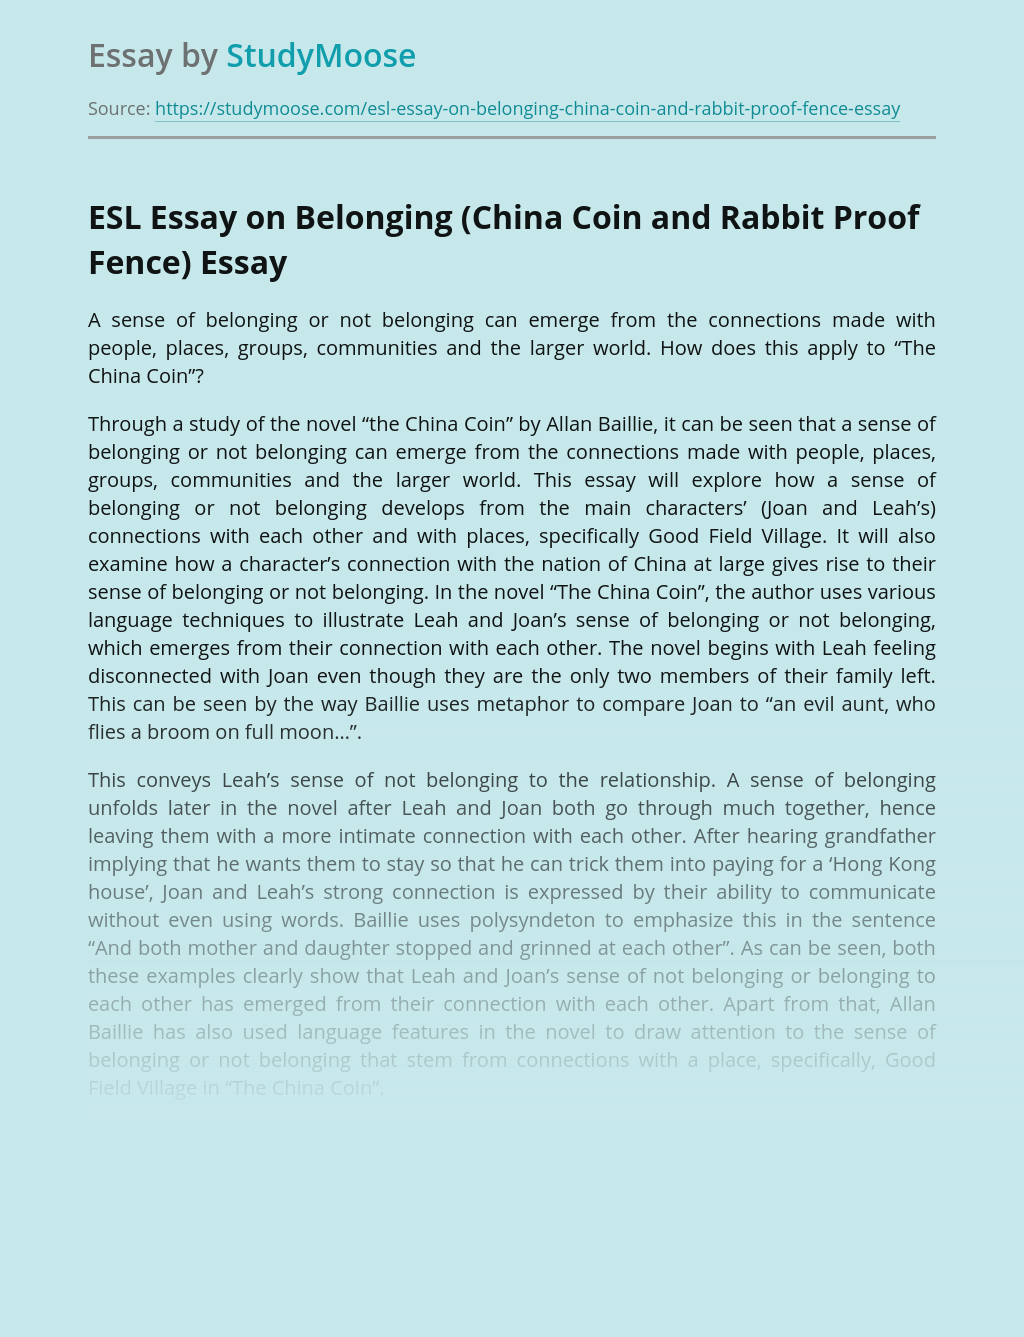 ESL Essay on Belonging (China Coin and Rabbit Proof Fence)